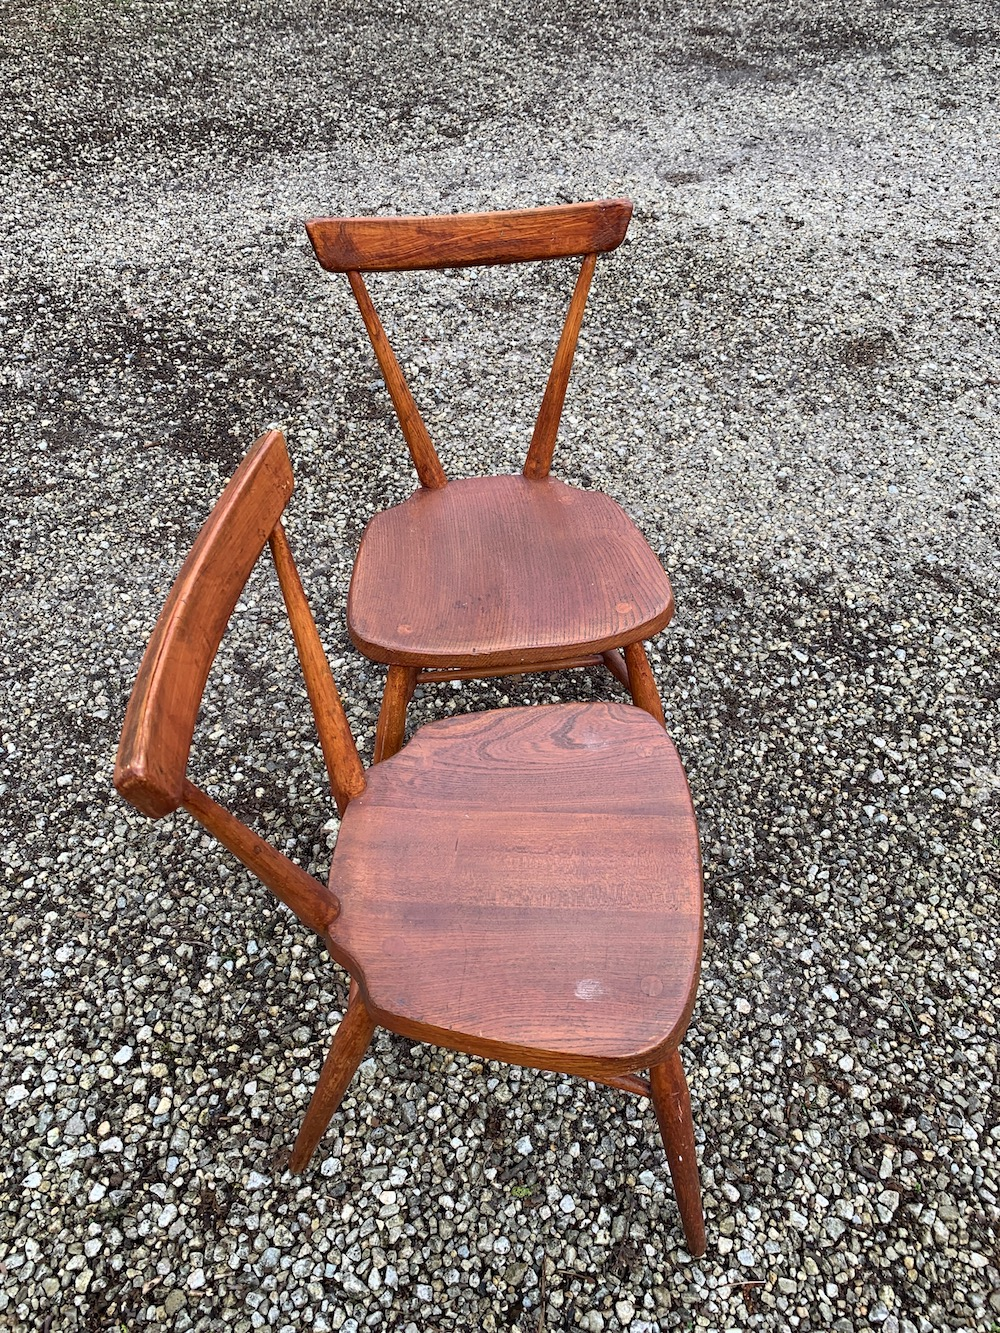 Luigi Ercolani, Windsor chairs, Ercol, stacking chairs, school chairs, English design, vintage chairs, Ercol chairs, wooden chairs, Windsor